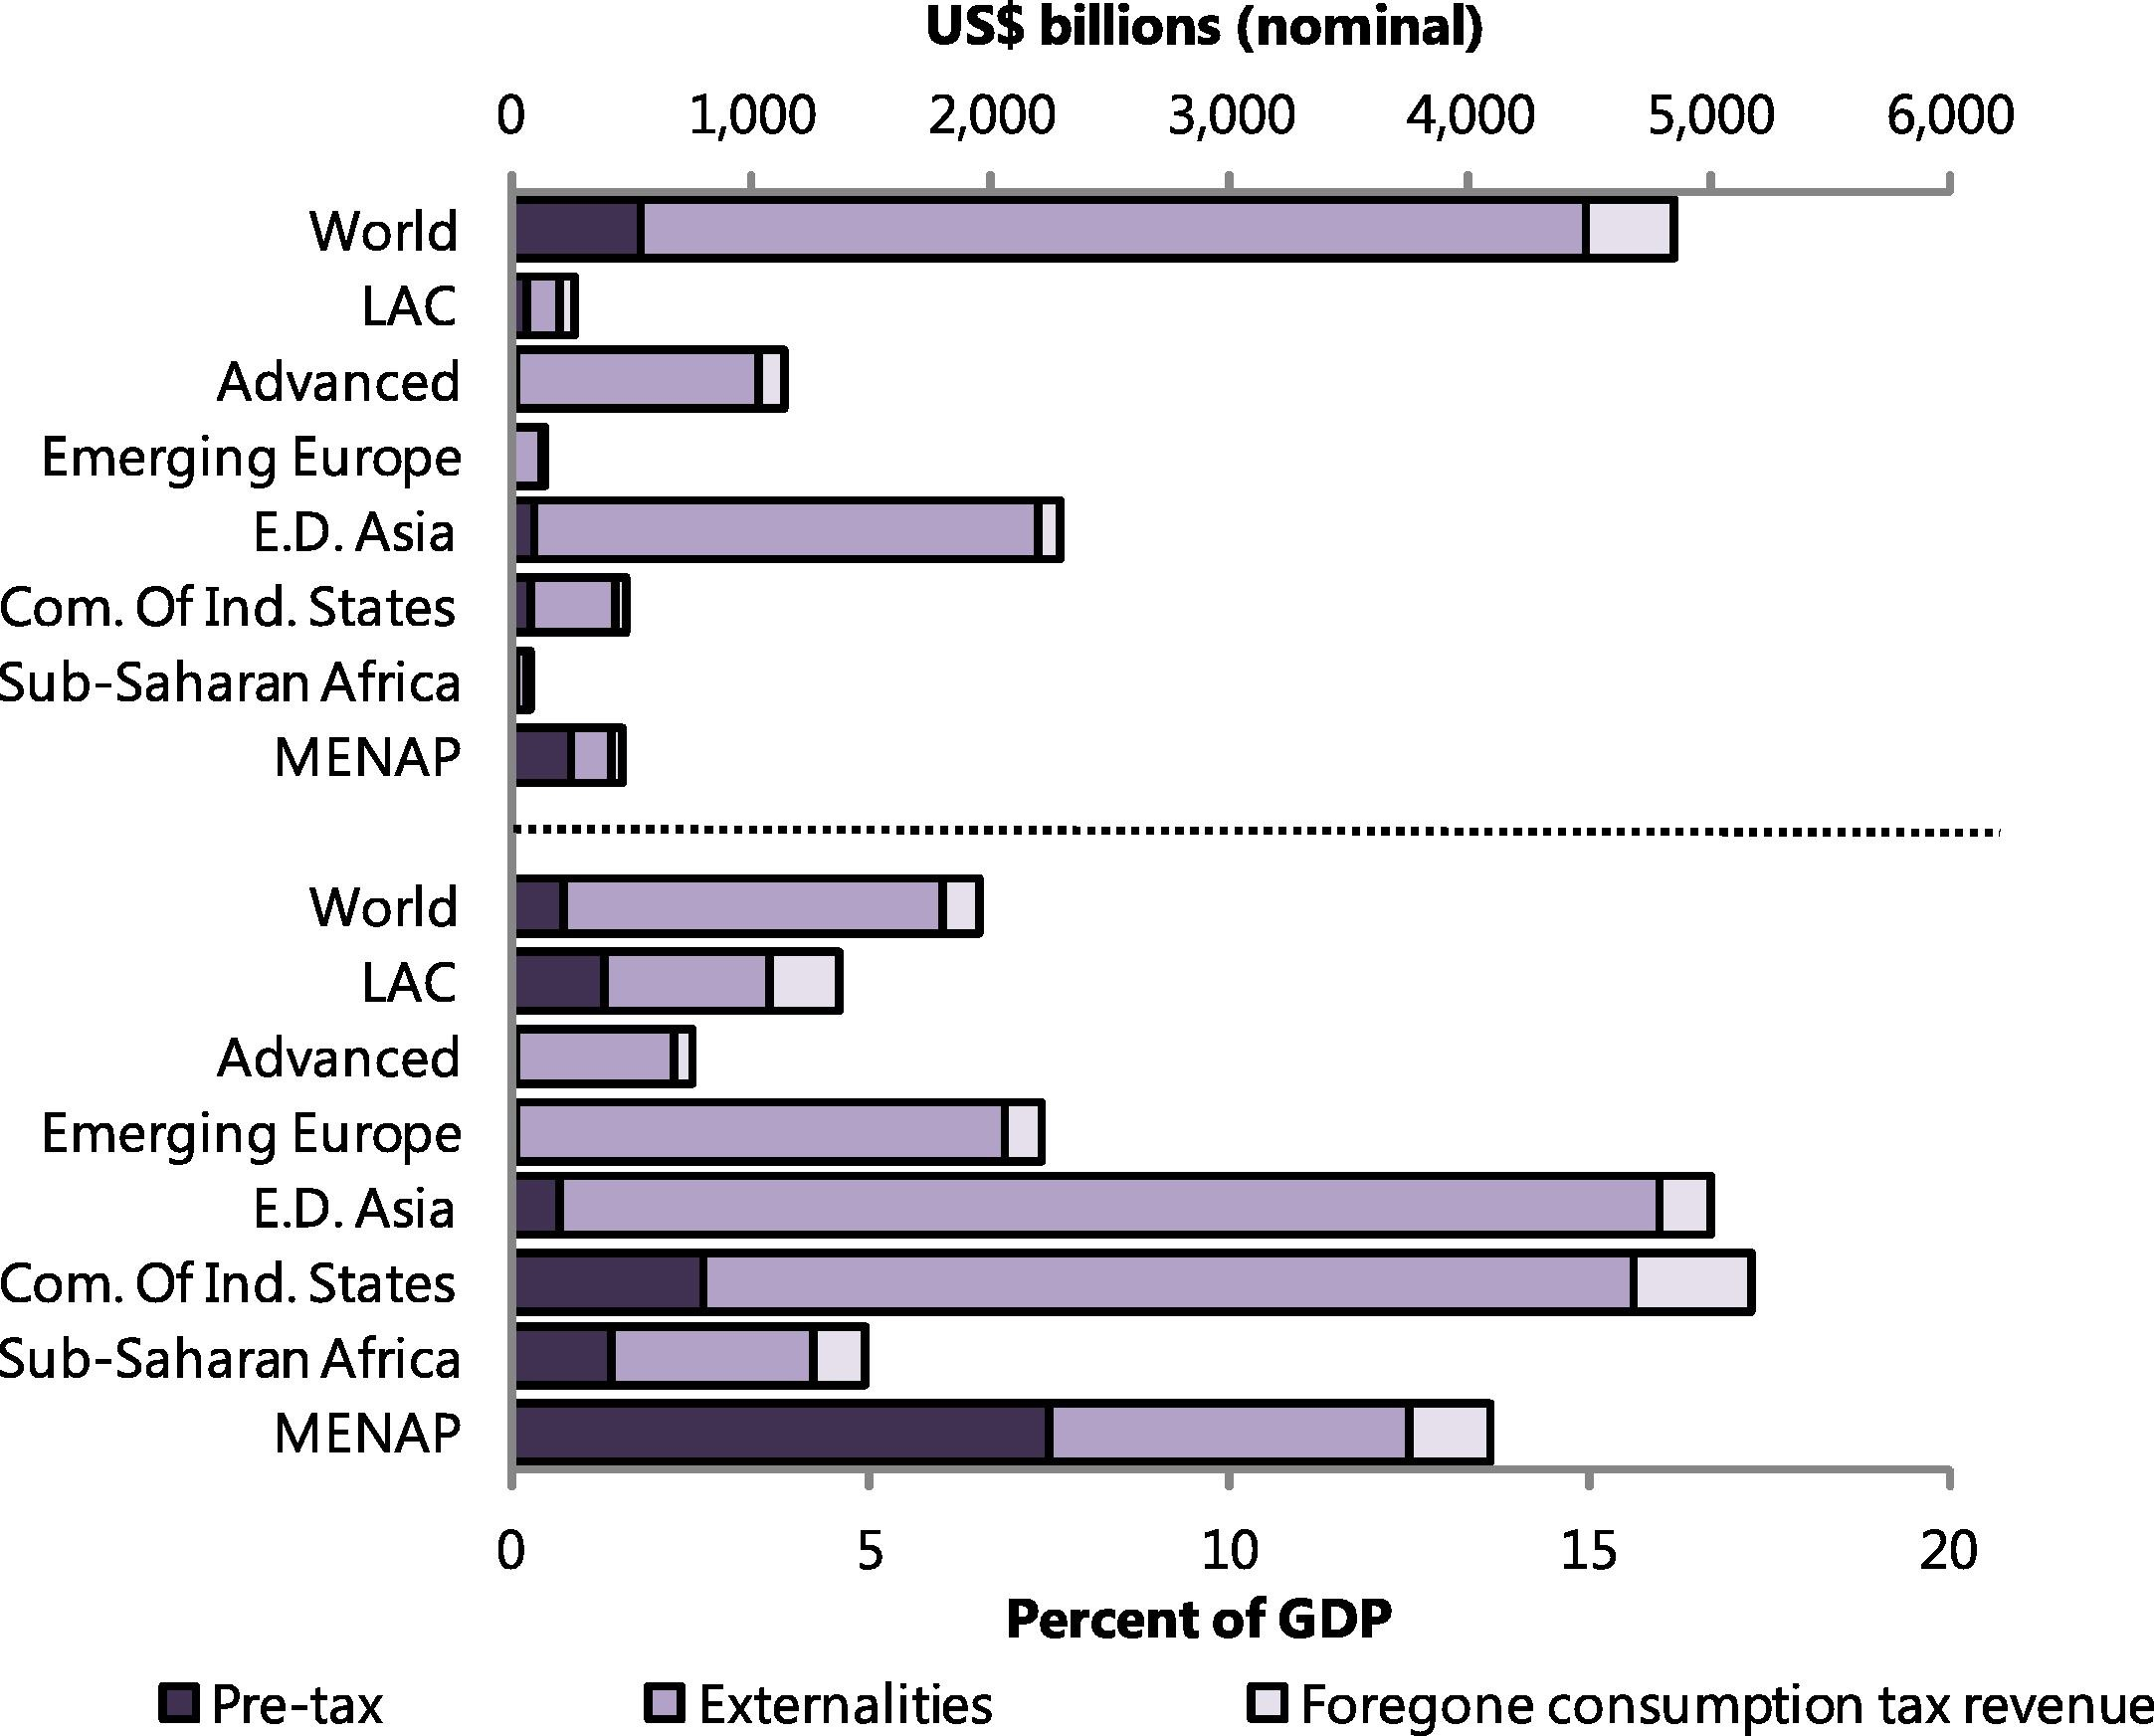 Fossil Fuel Subsidies: Energy Subsidies by Region and Subsidy Component, 2013